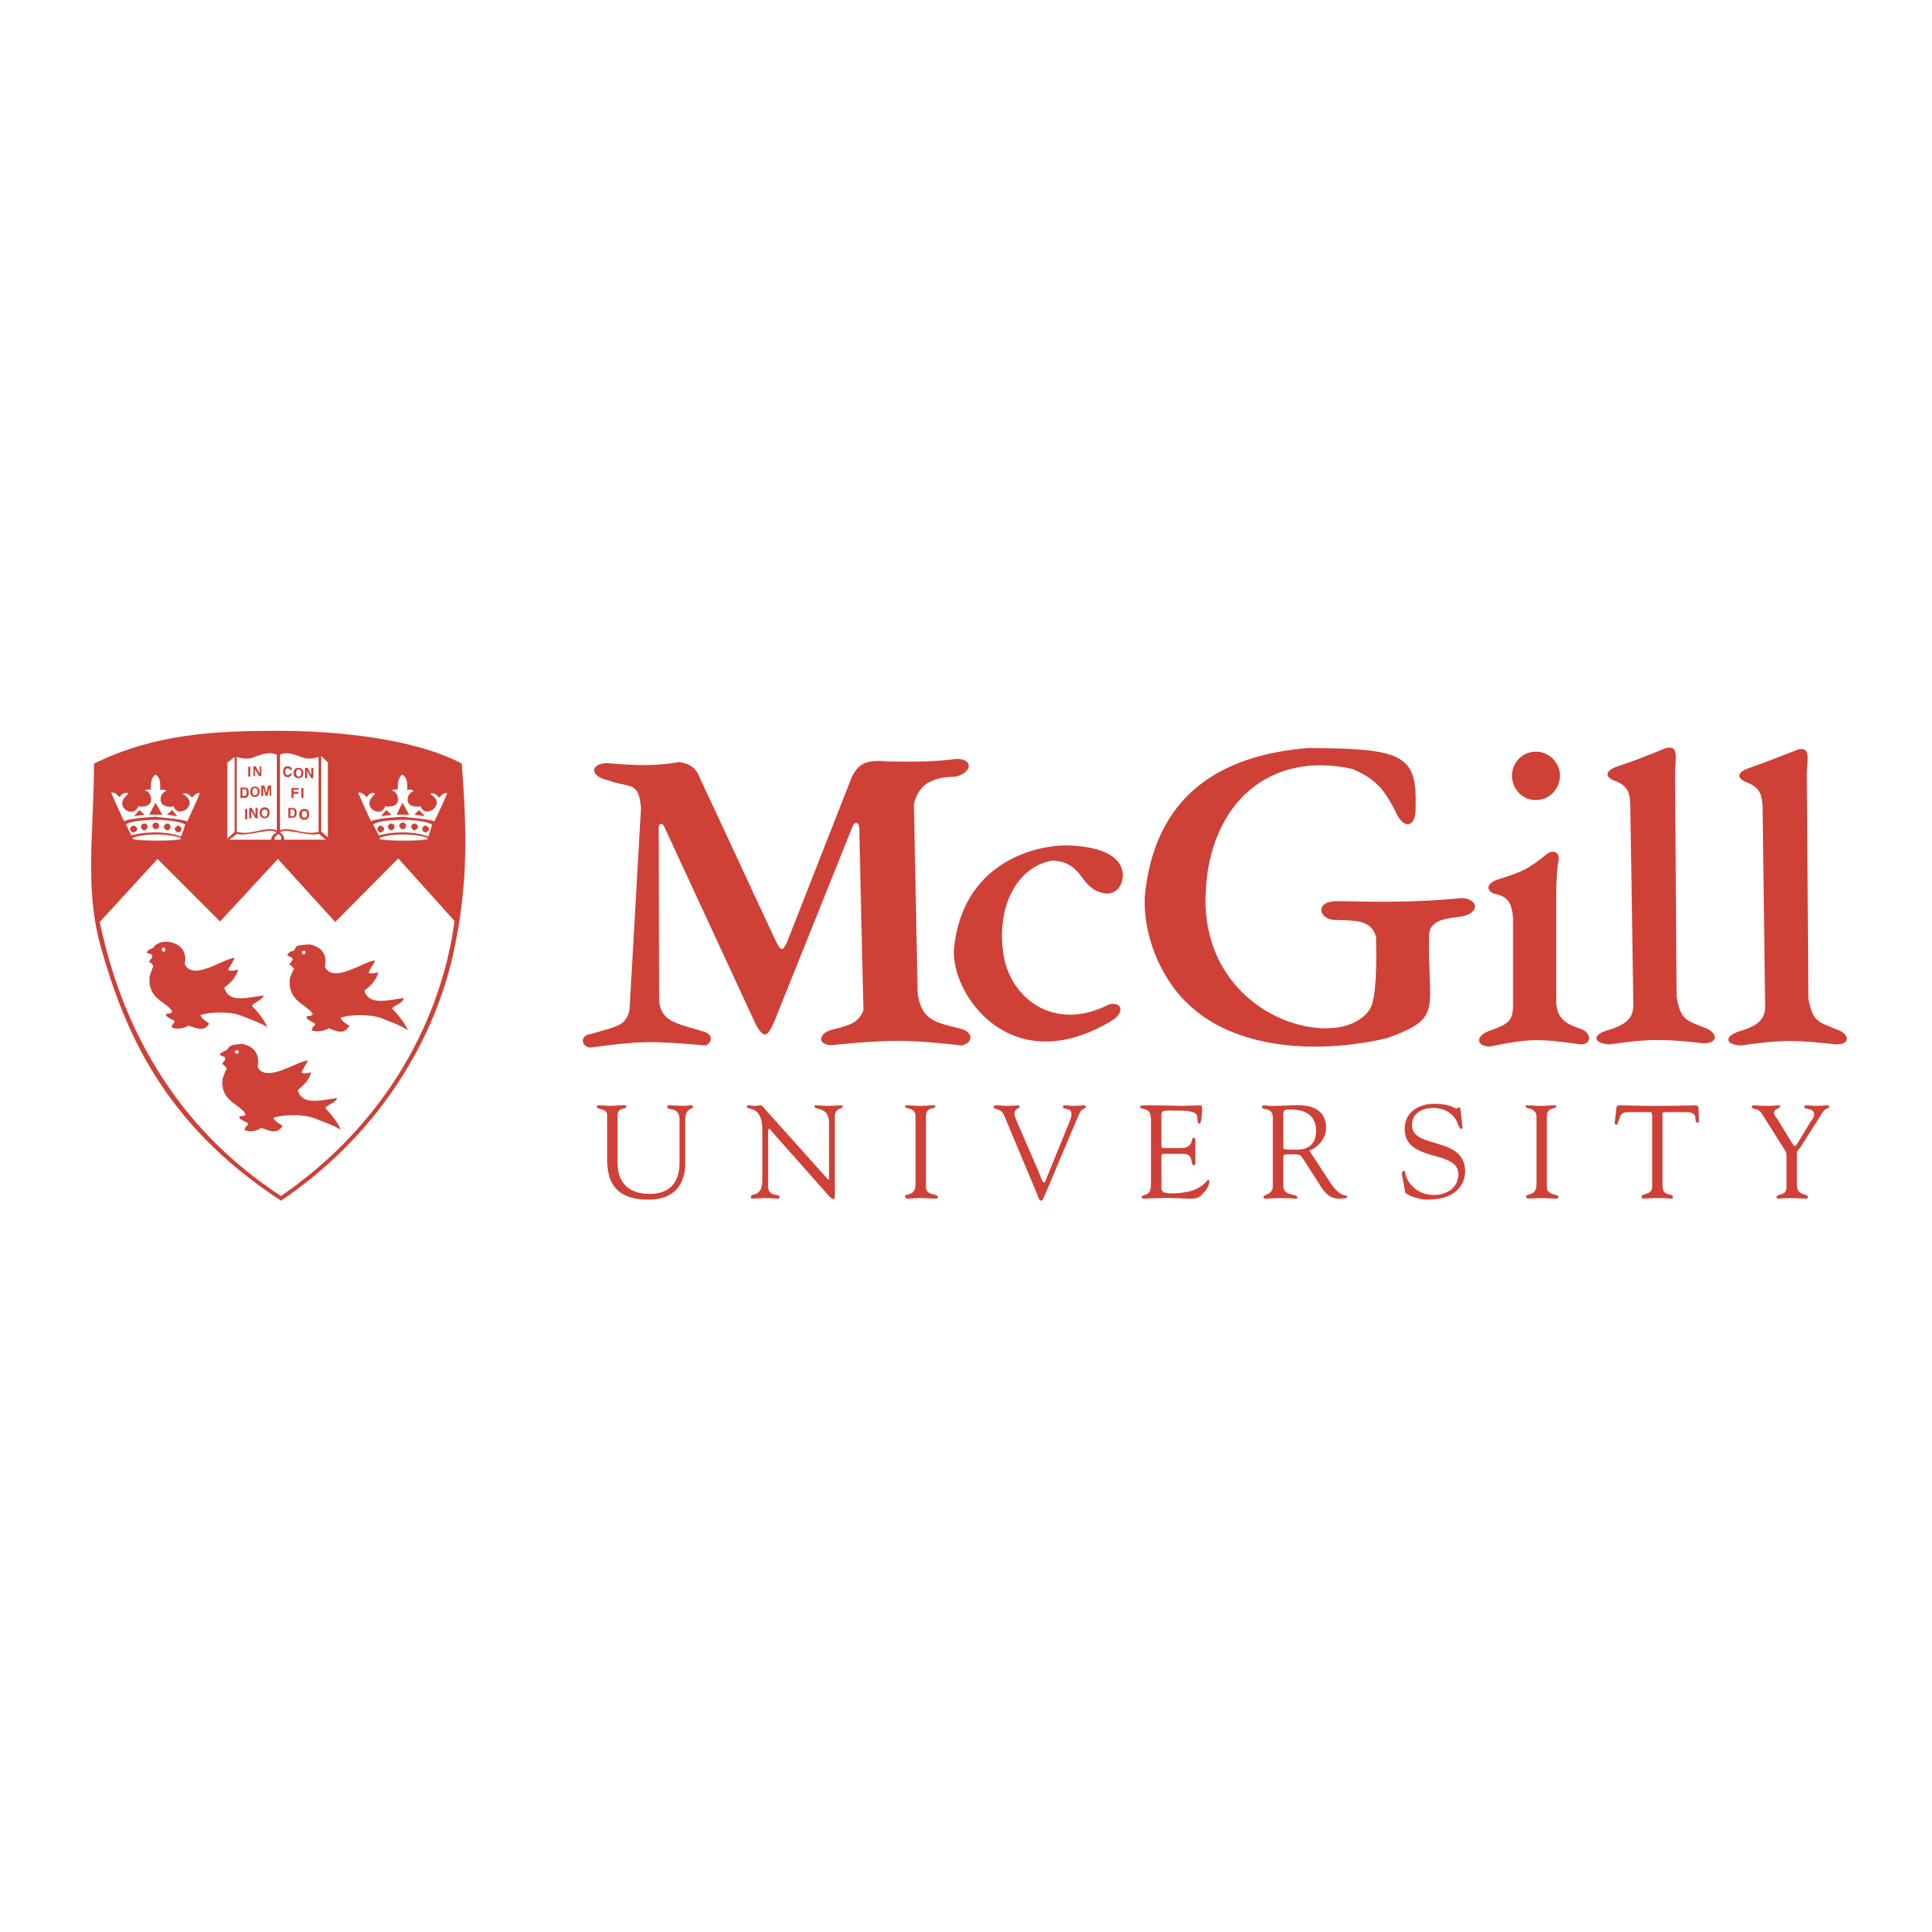 mcgill-university-logo-png-transparent